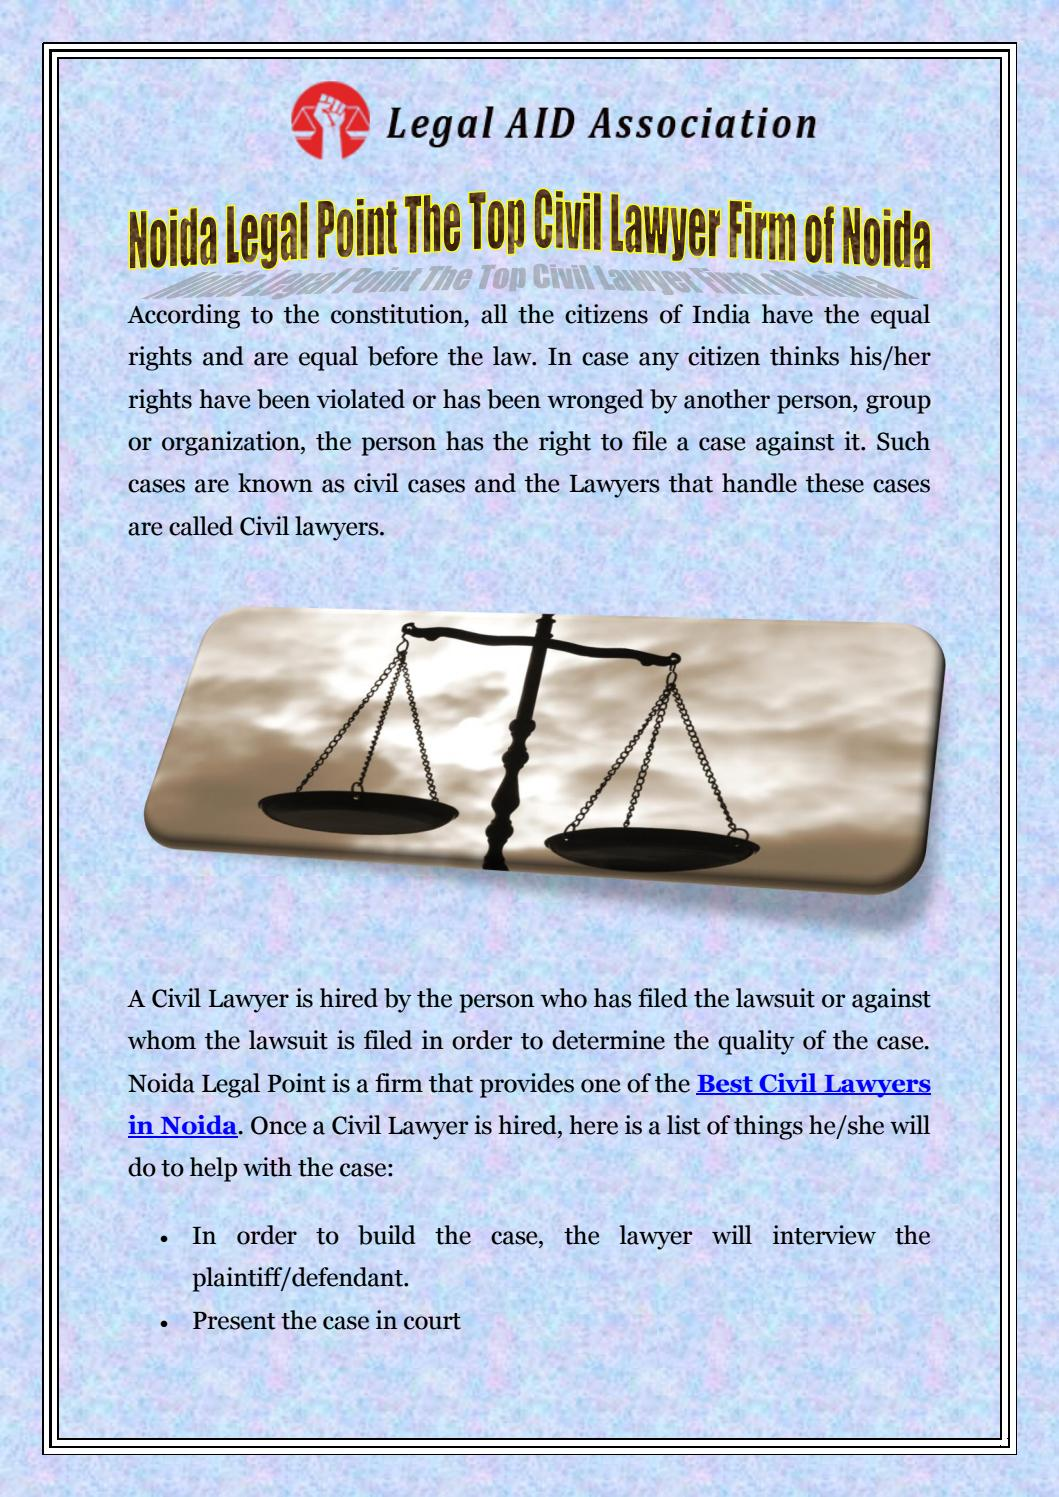 Noida Legal Point The Top Civil Lawyer Firm of Noida by